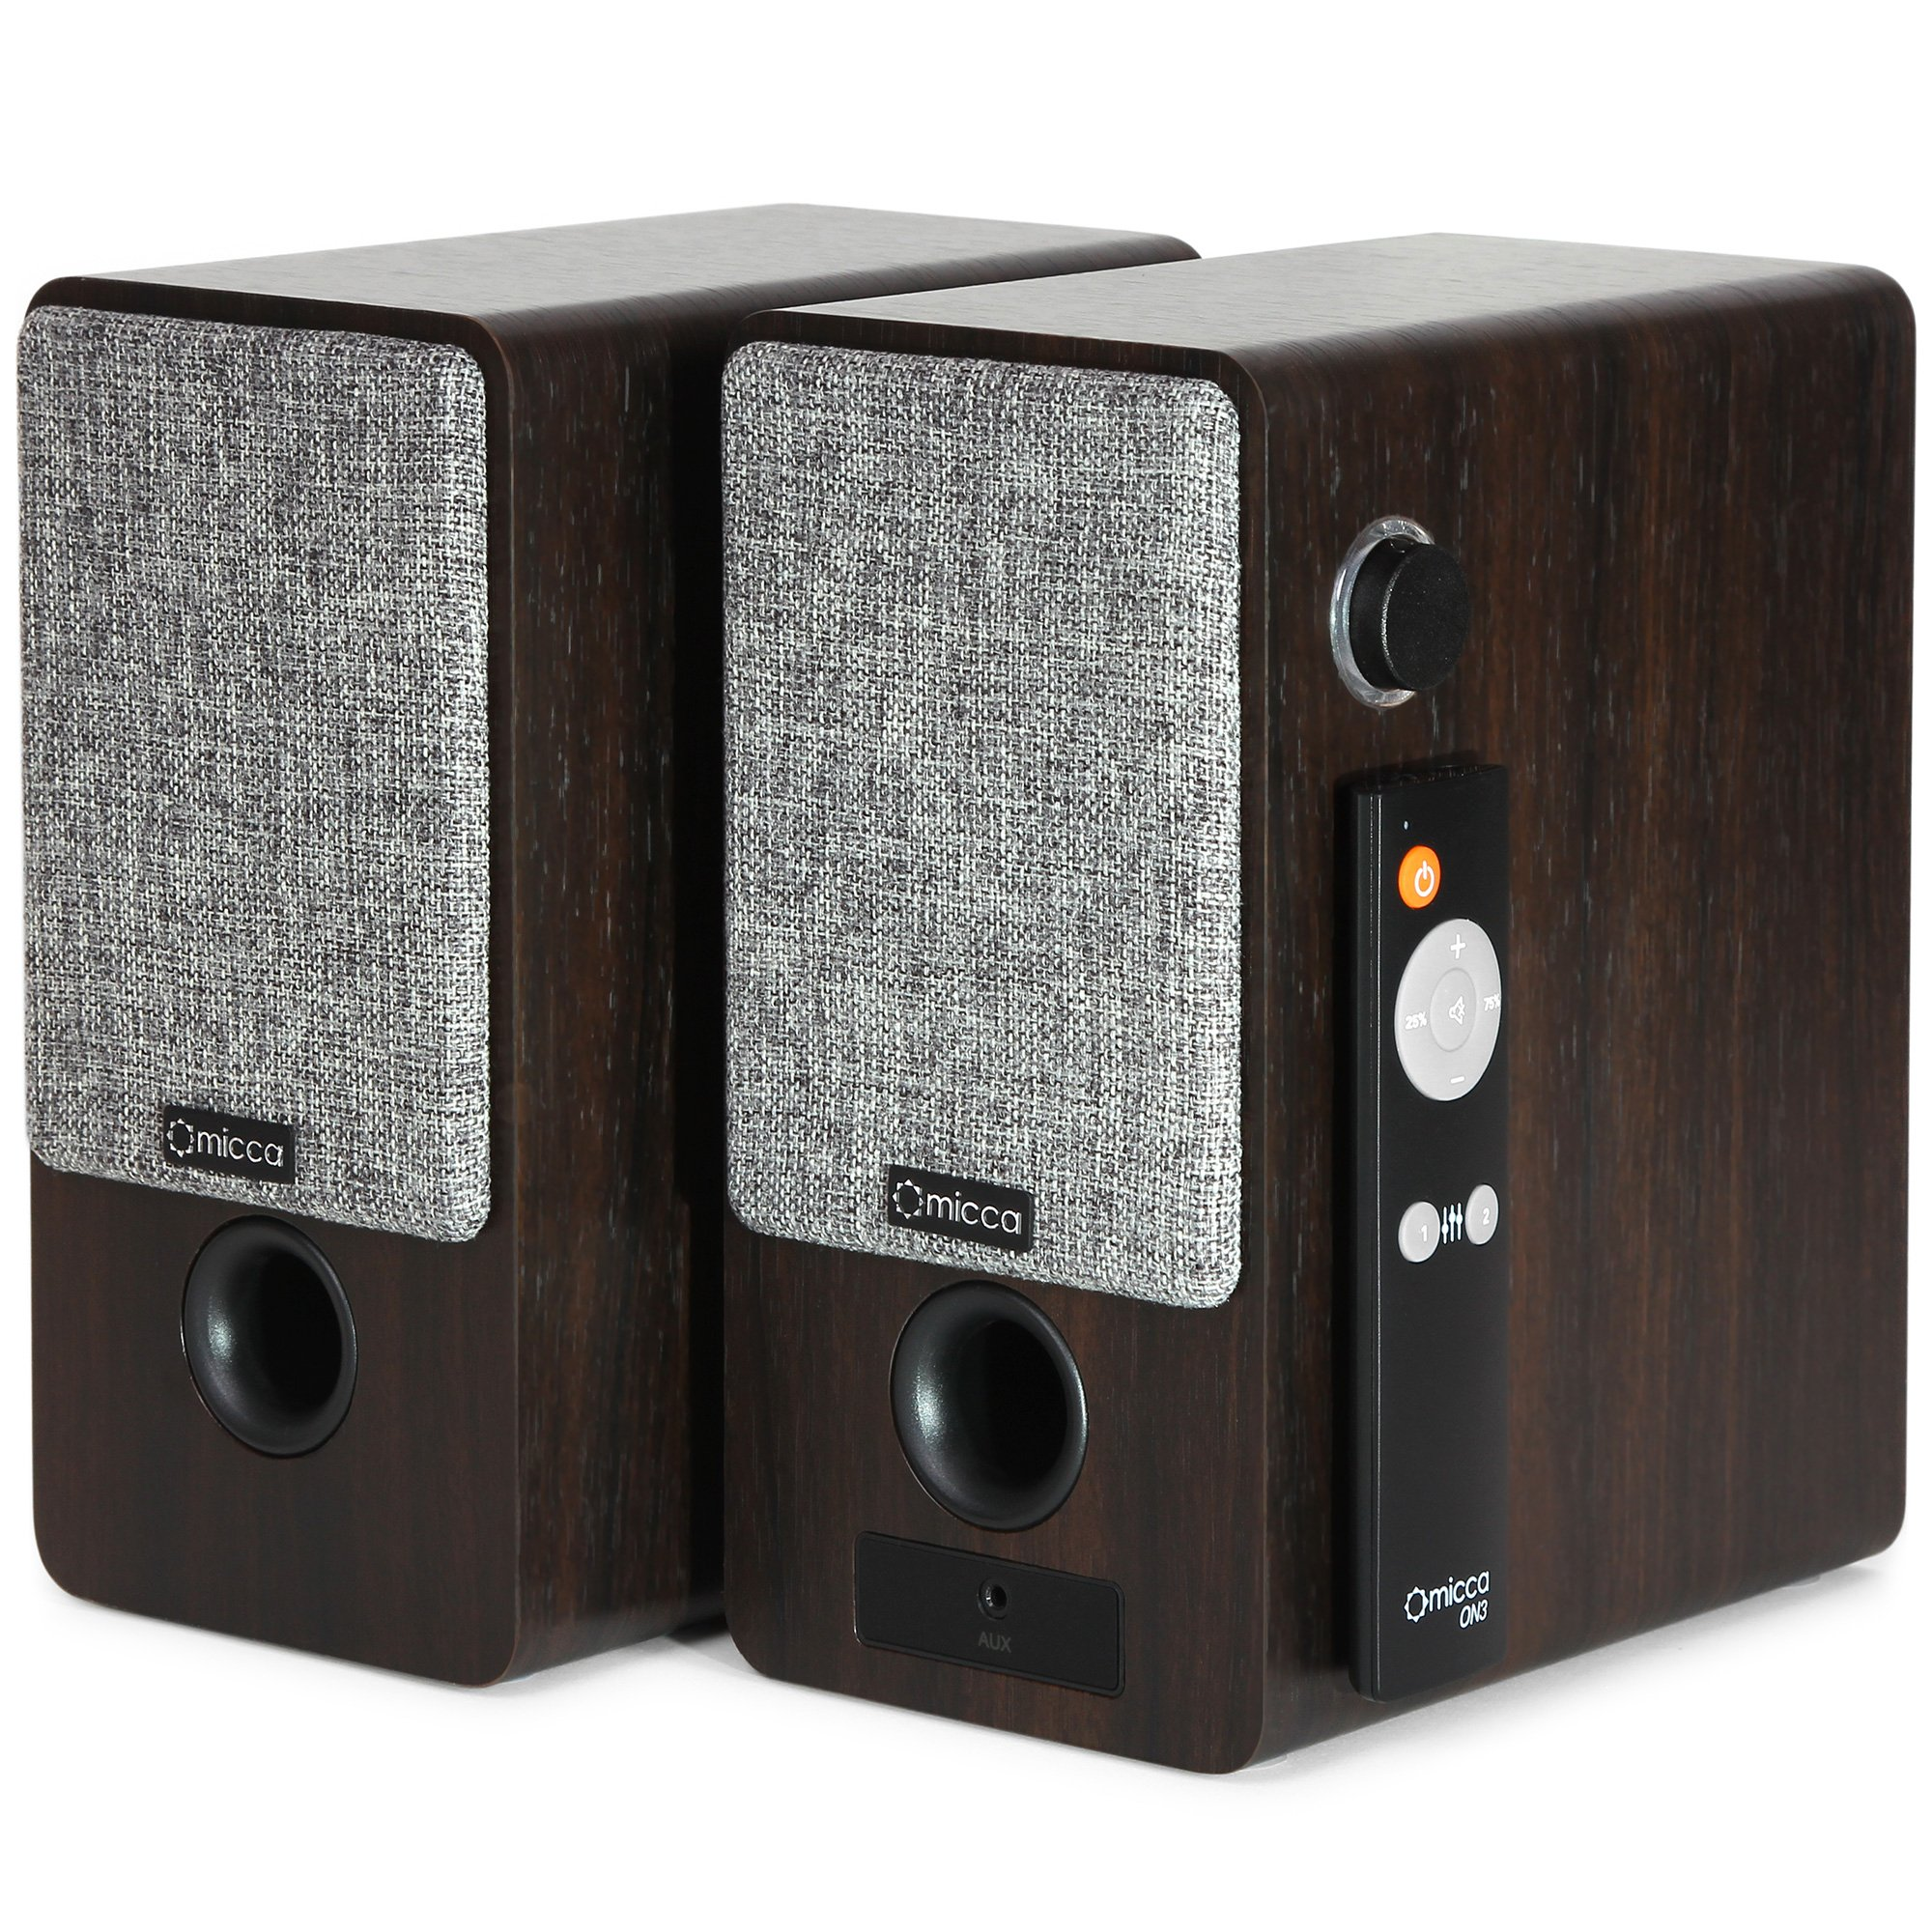 Micca ON3 3-Inch Powered Bookshelf Speakers with Remote Control, 48 Watts (24W x 2) RMS Power, Front and Rear Input Jacks by Micca (Image #4)